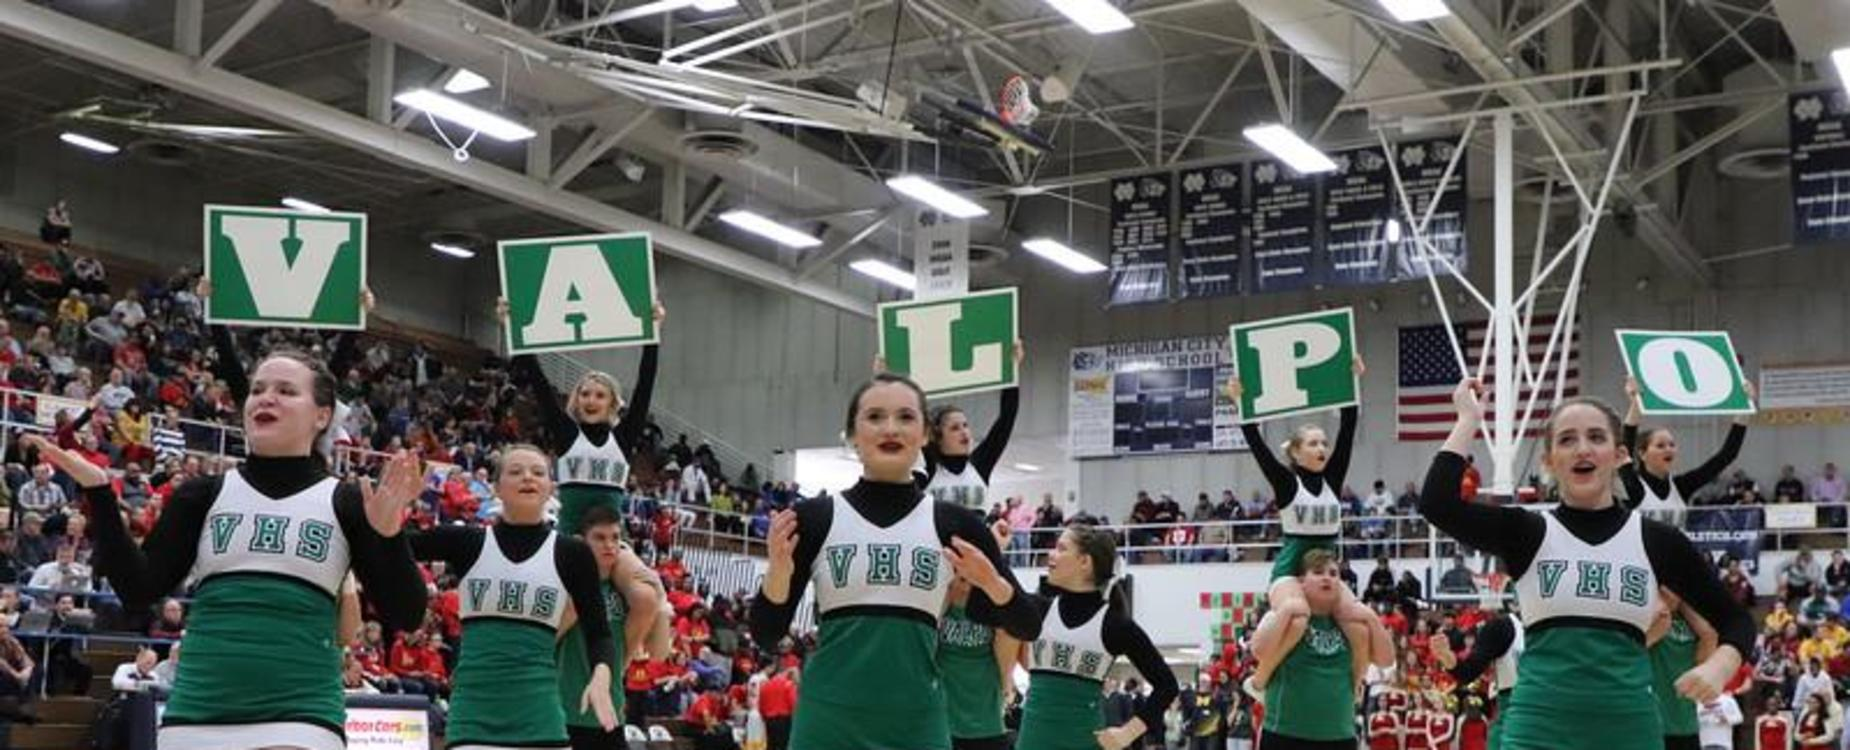 VHS Cheerleaders perform 'Valpo' cheer during a break in a boys basketball game.